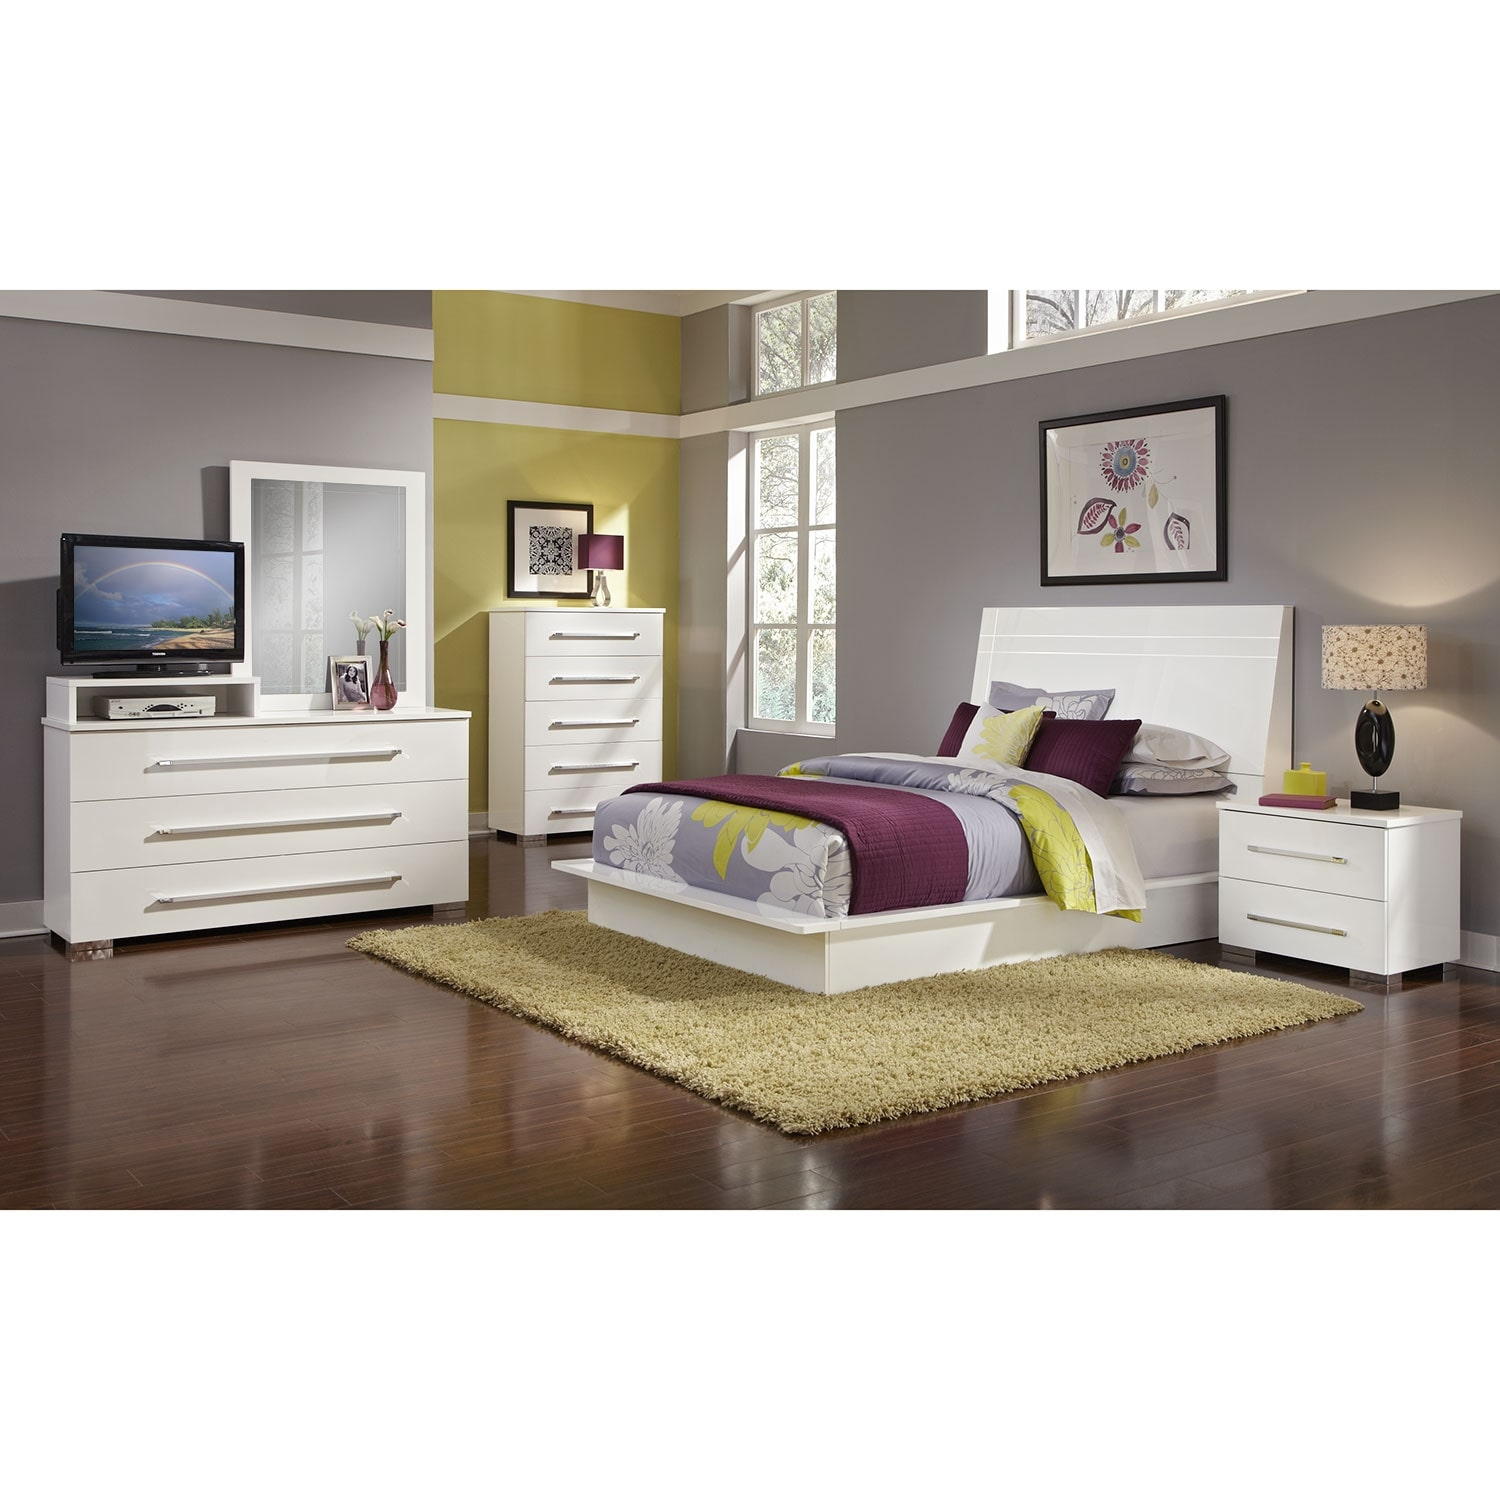 dimora bedroom set dimora 7 panel bedroom set with media dresser 11428